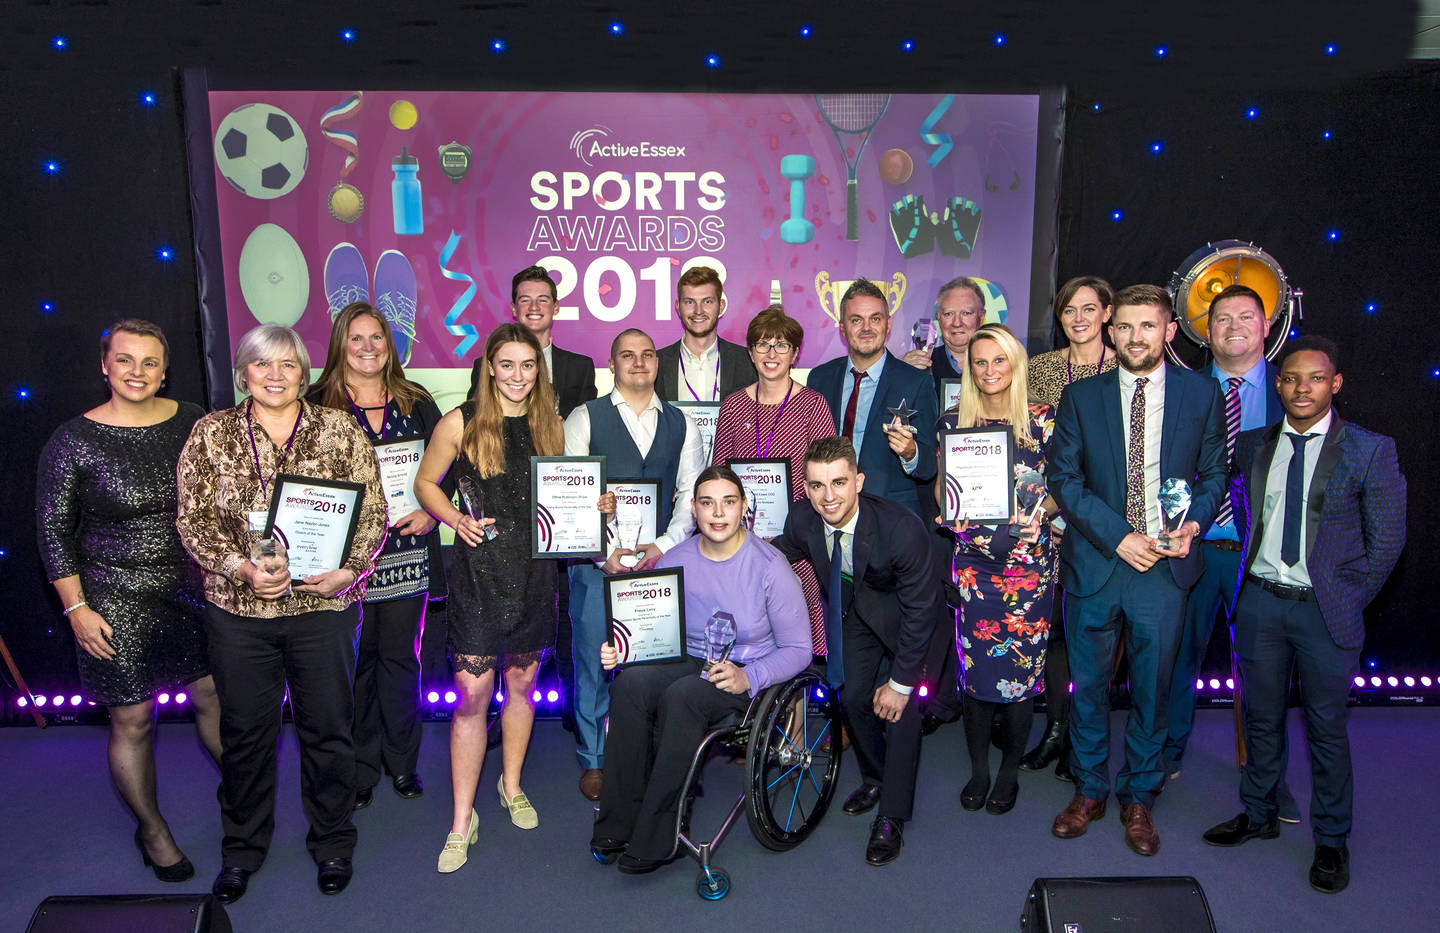 All the winners at the Active Essex Sports Awards 2018 with Max Whitlock (Credit: Active Essex)